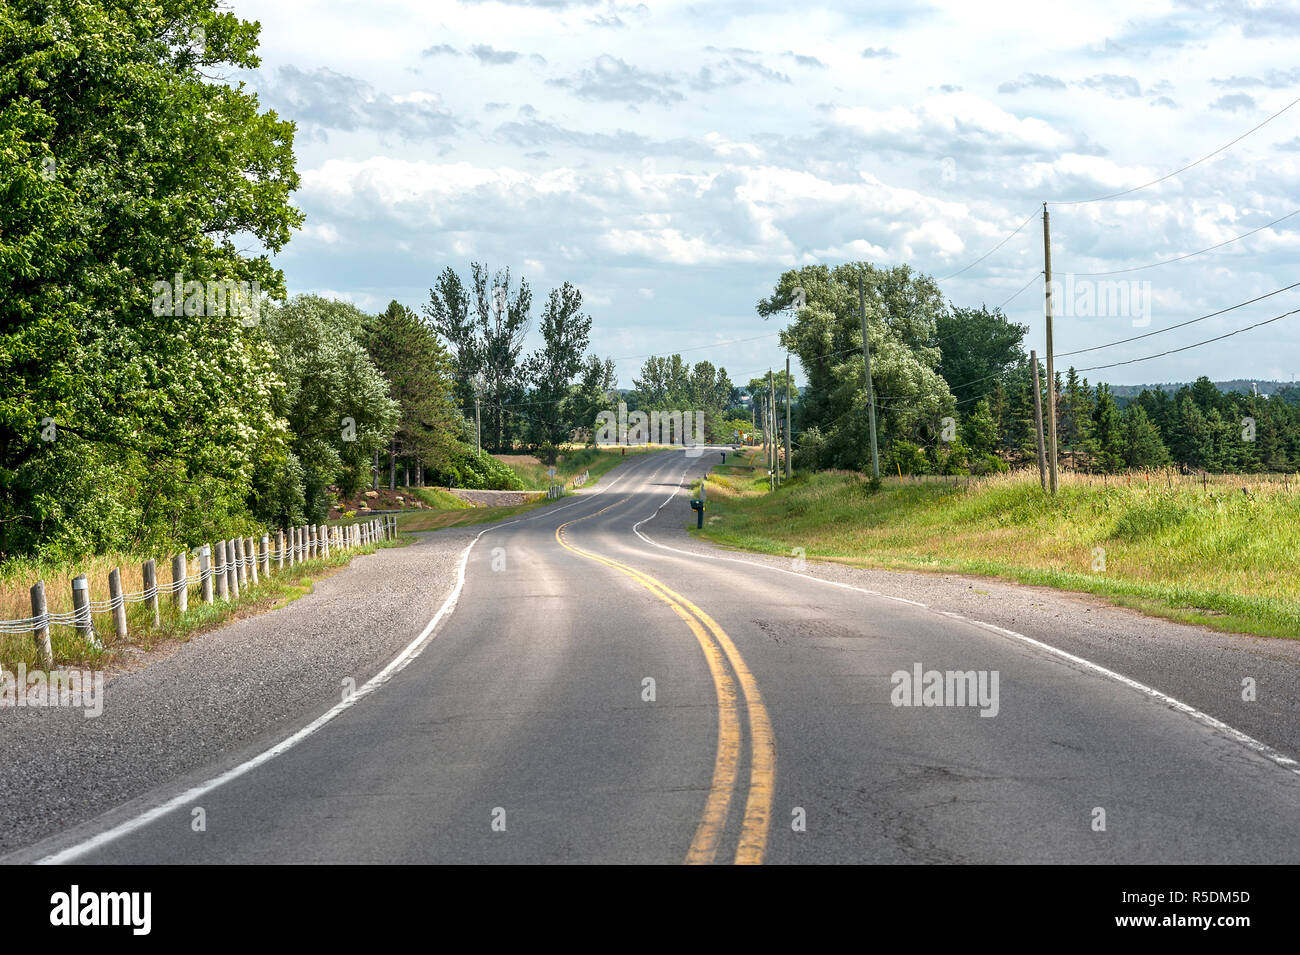 winding country road with no cars or people - Stock Image